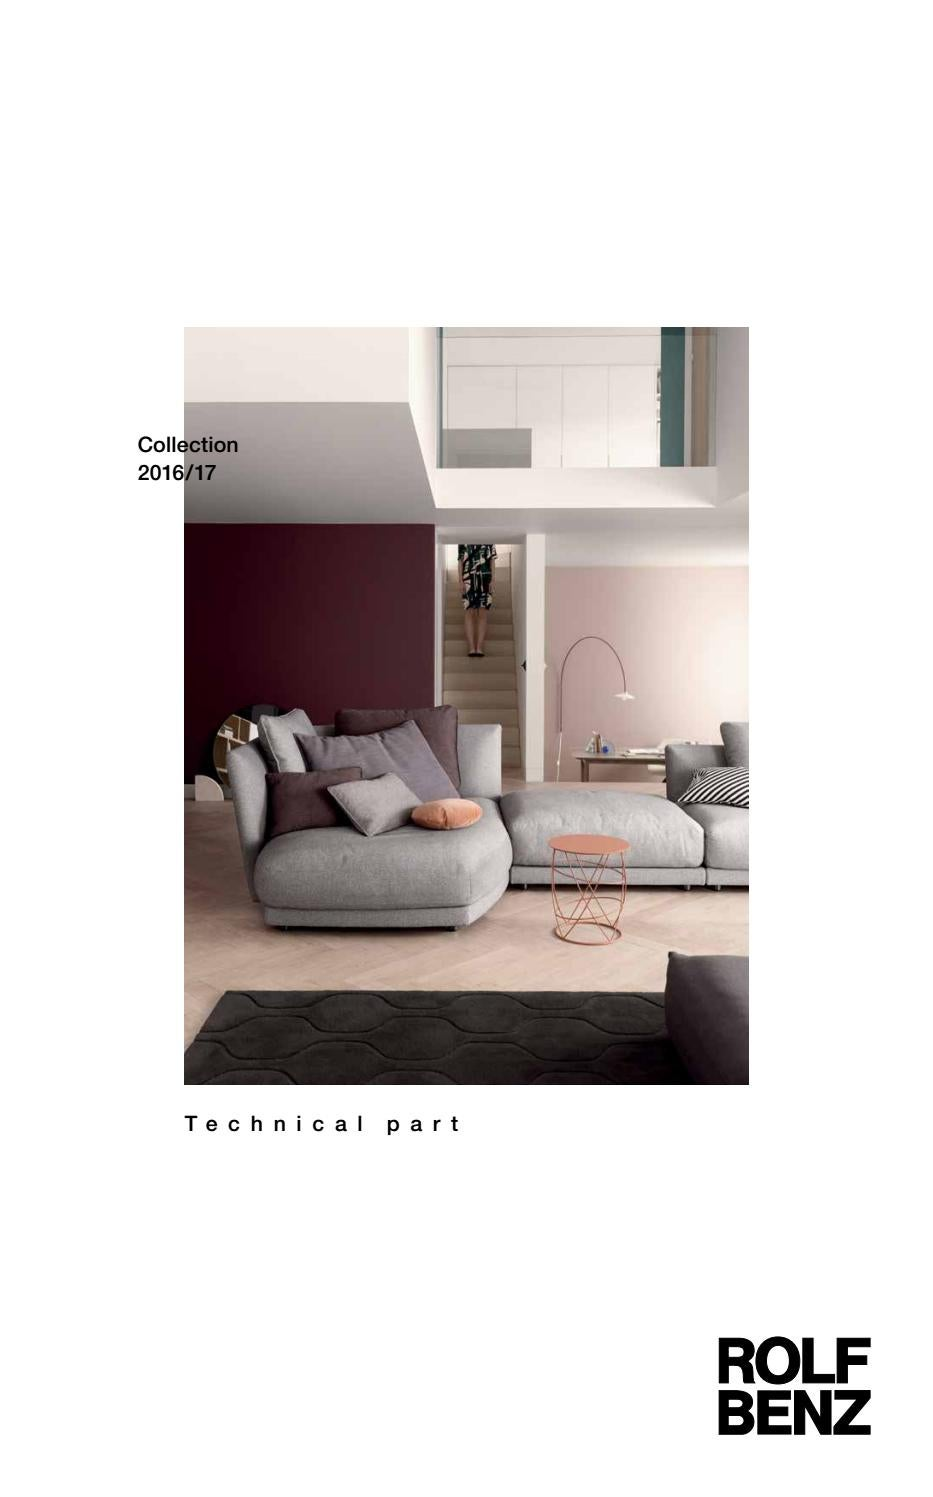 Rolf benz katalog 2017 dane techniczne by domatoria issuu for Rolf benz katalog